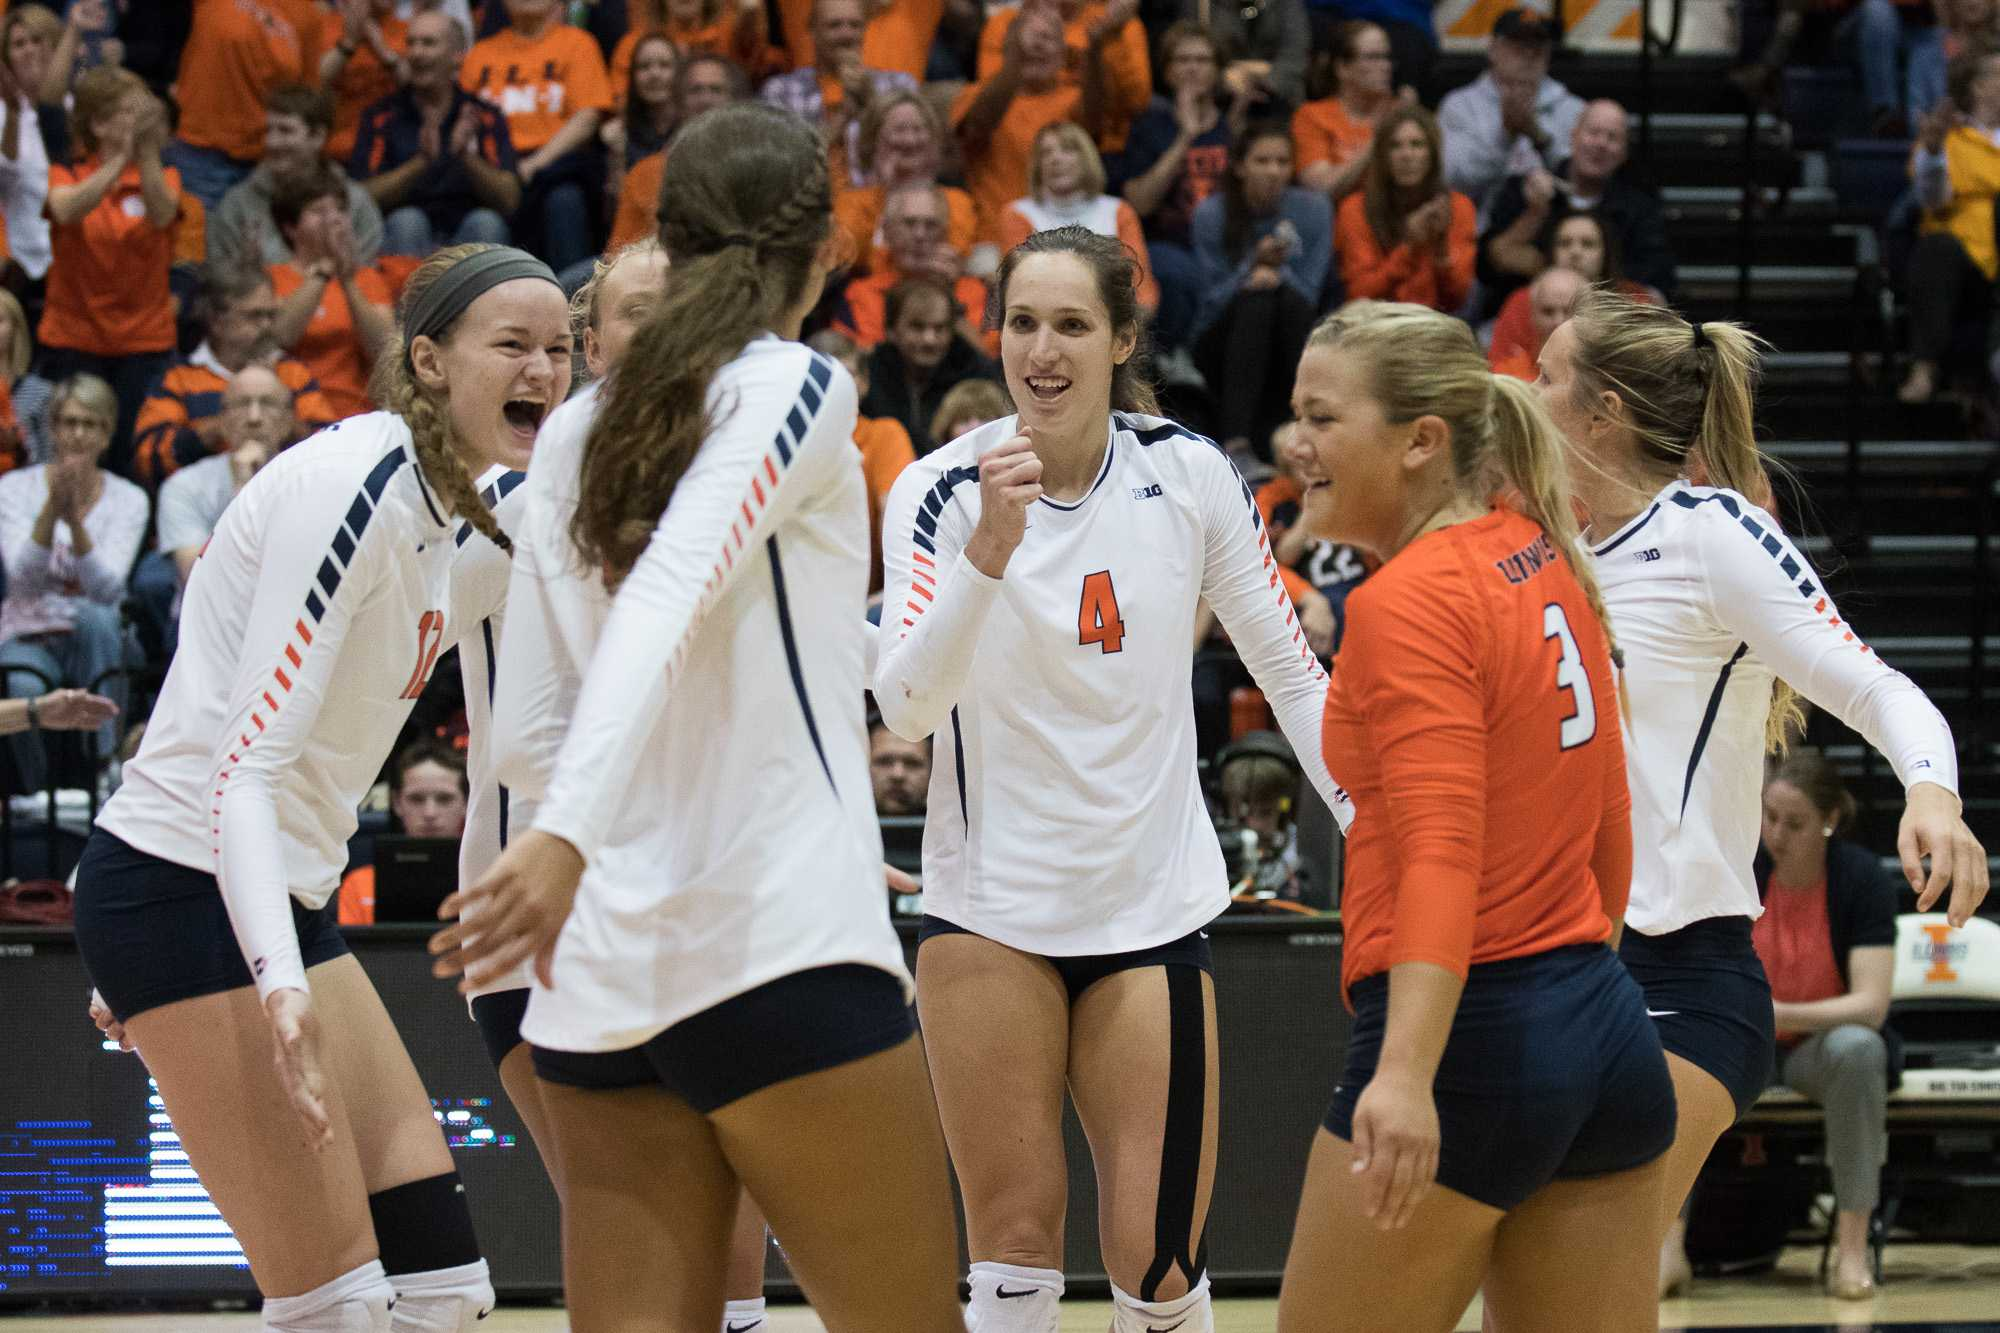 Players (Michelle Strizak (4)) on the Women's Volleyball team cheer and congratulate each other after scoring a point.